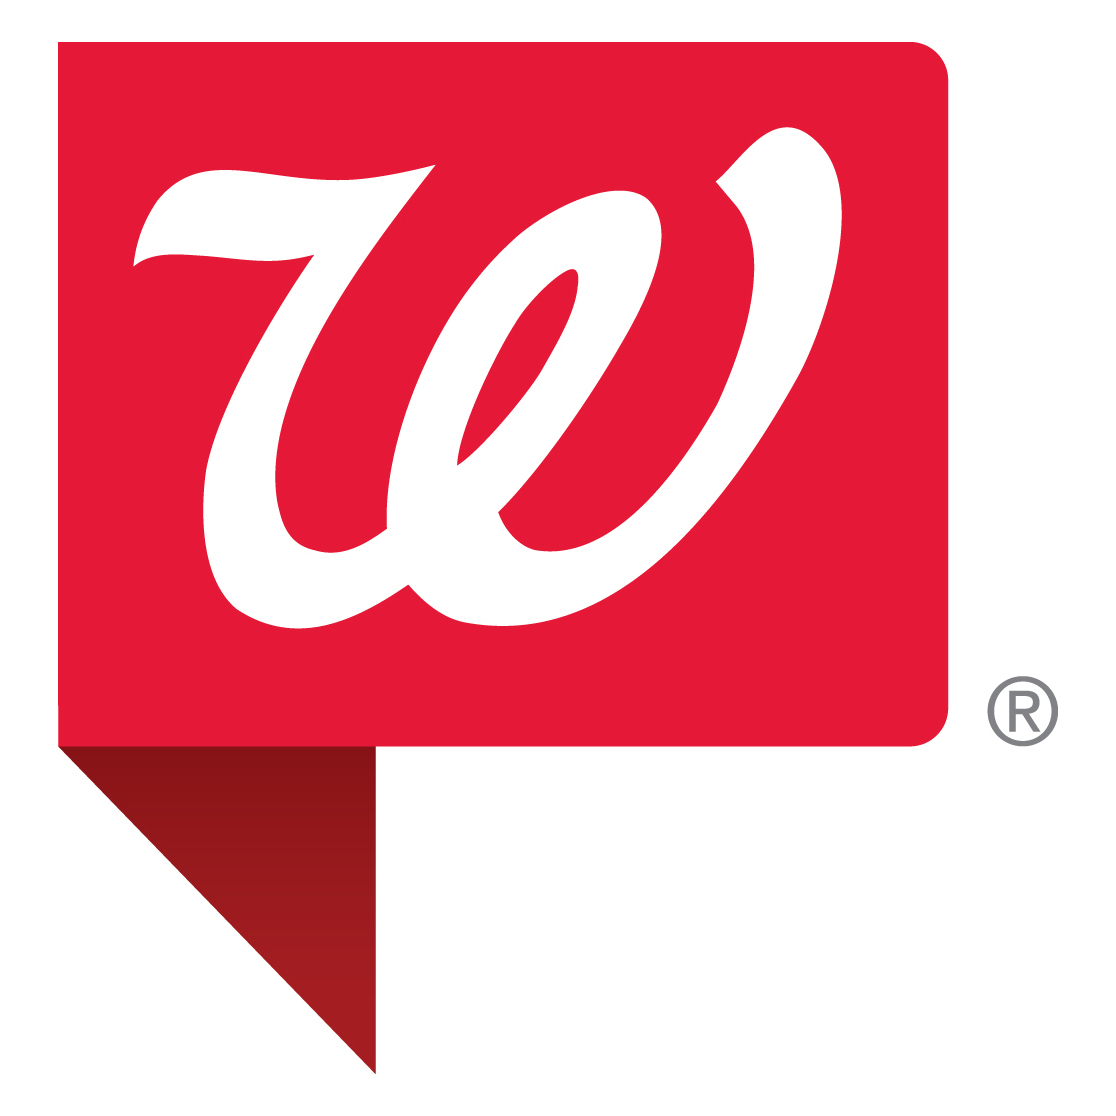 Walgreens - Port Saint Lucie, FL - Pharmacist